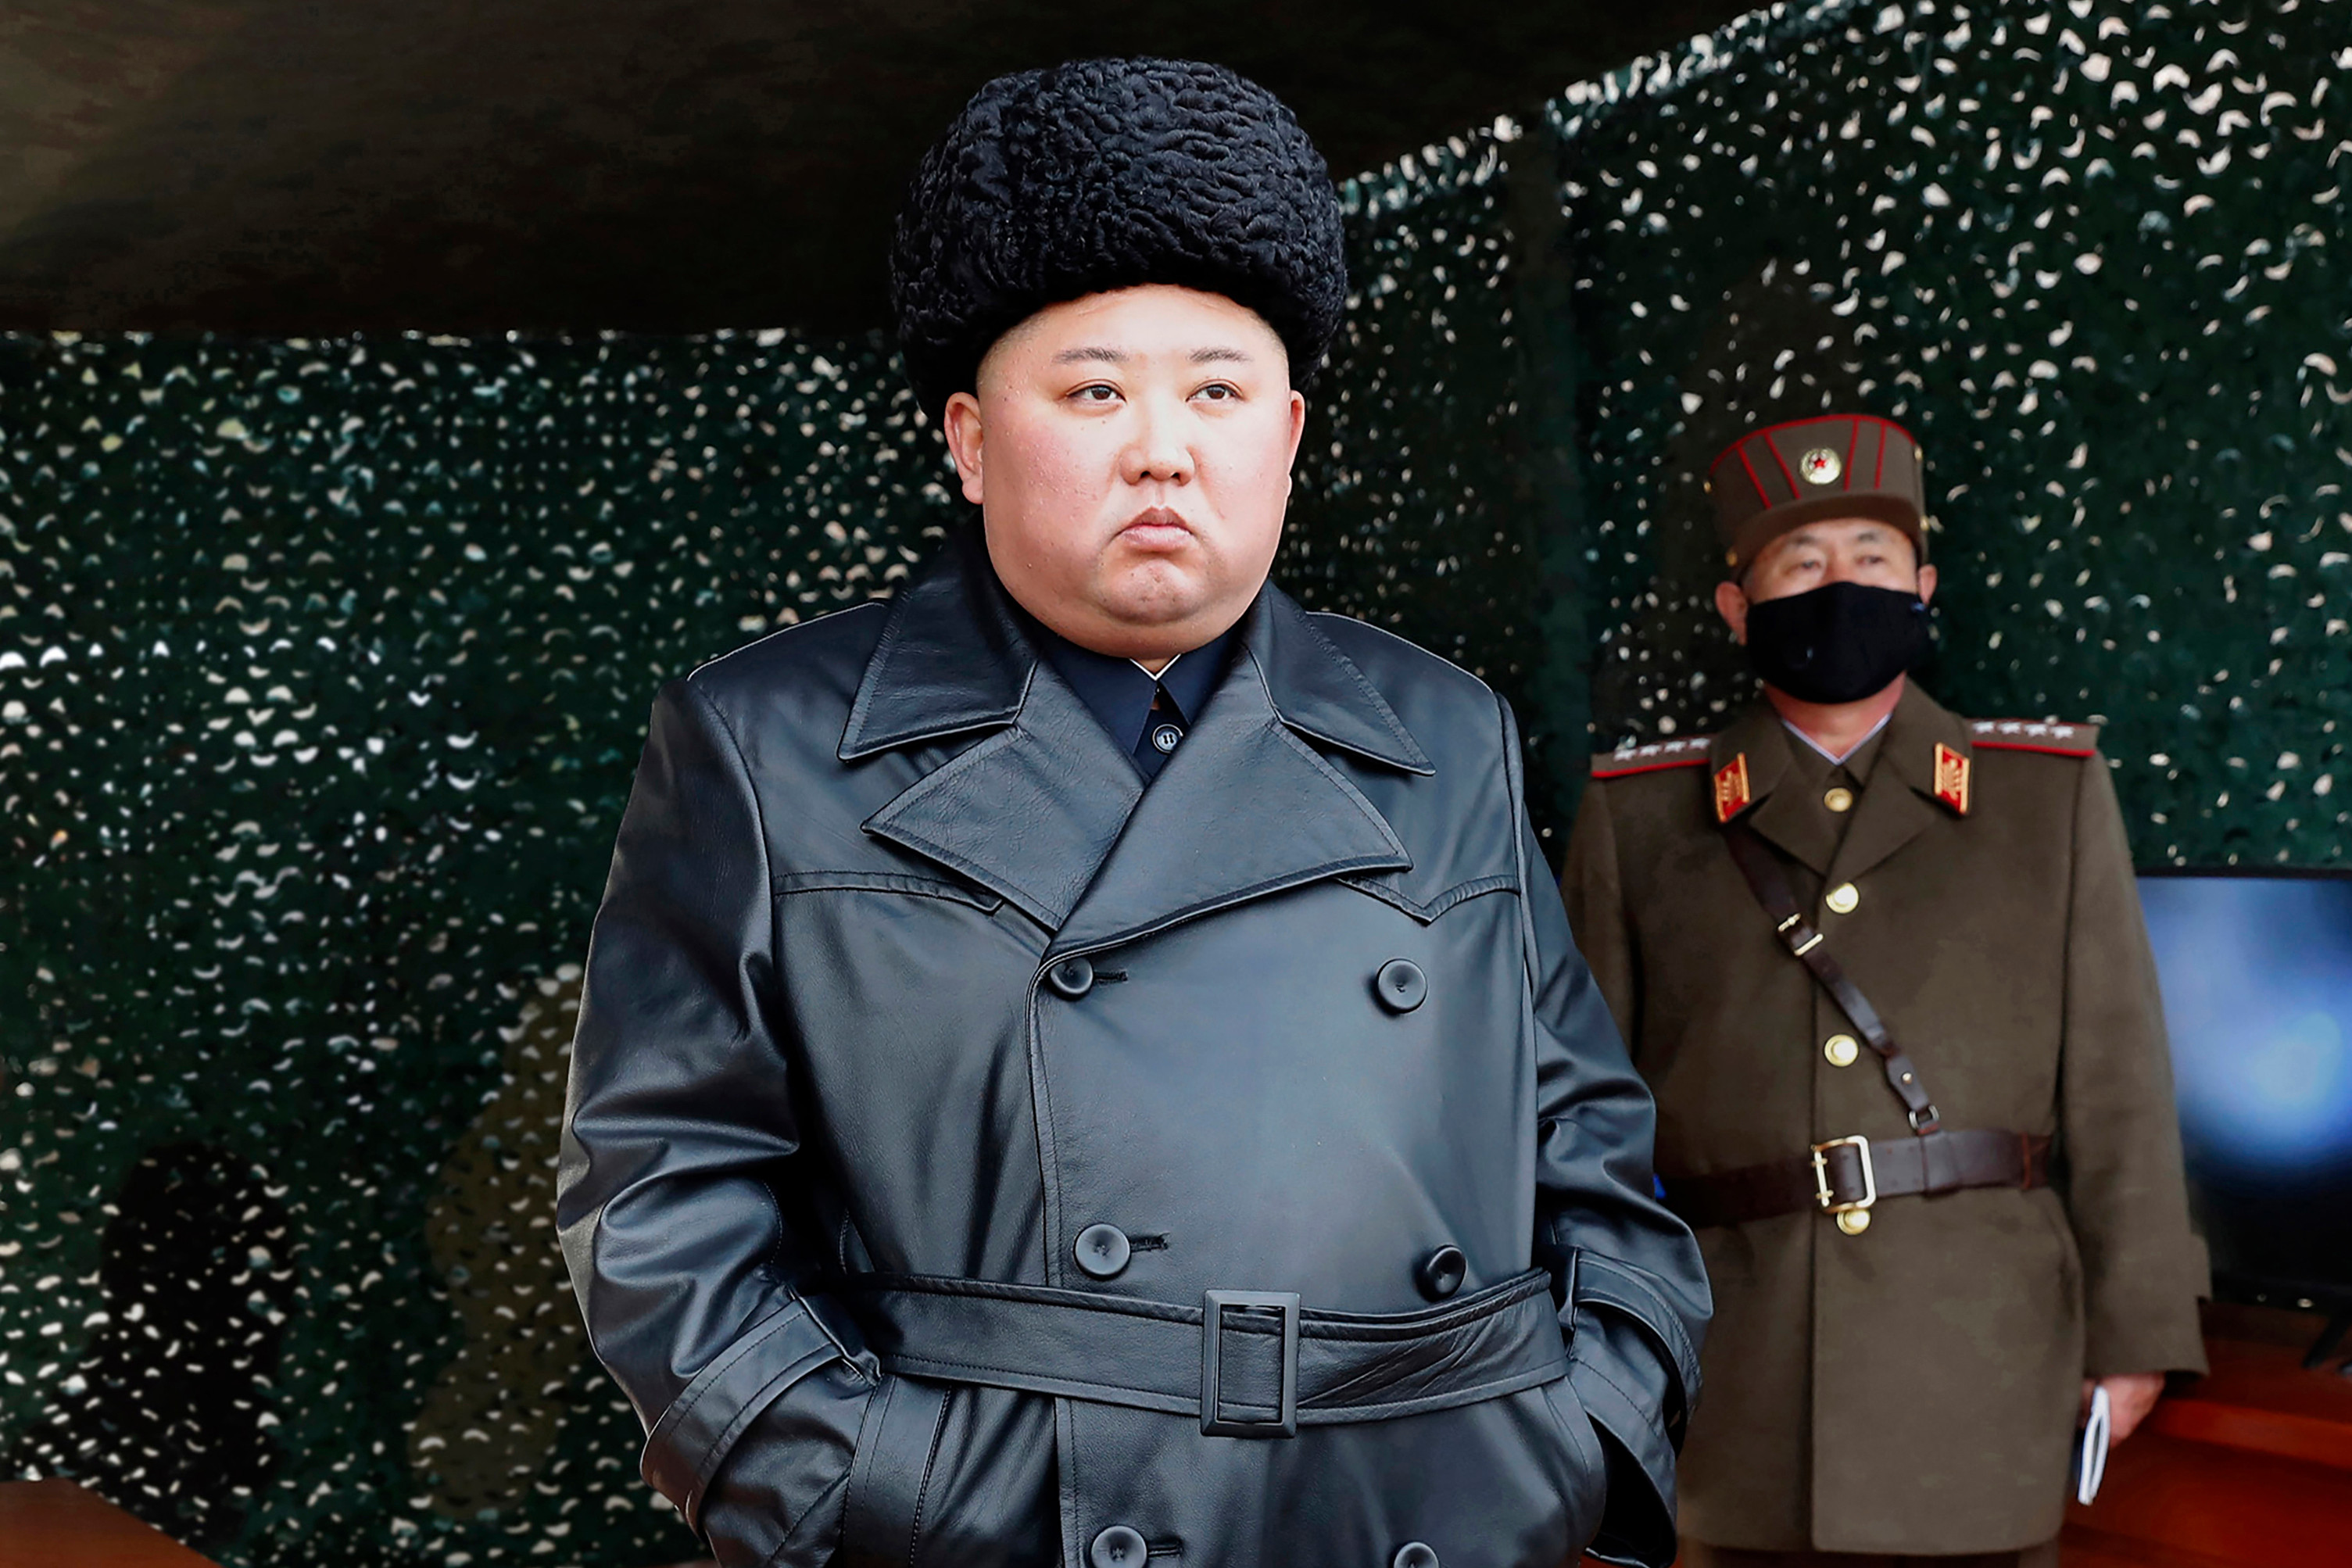 Kim Jong-un is known to personally attend missile tests